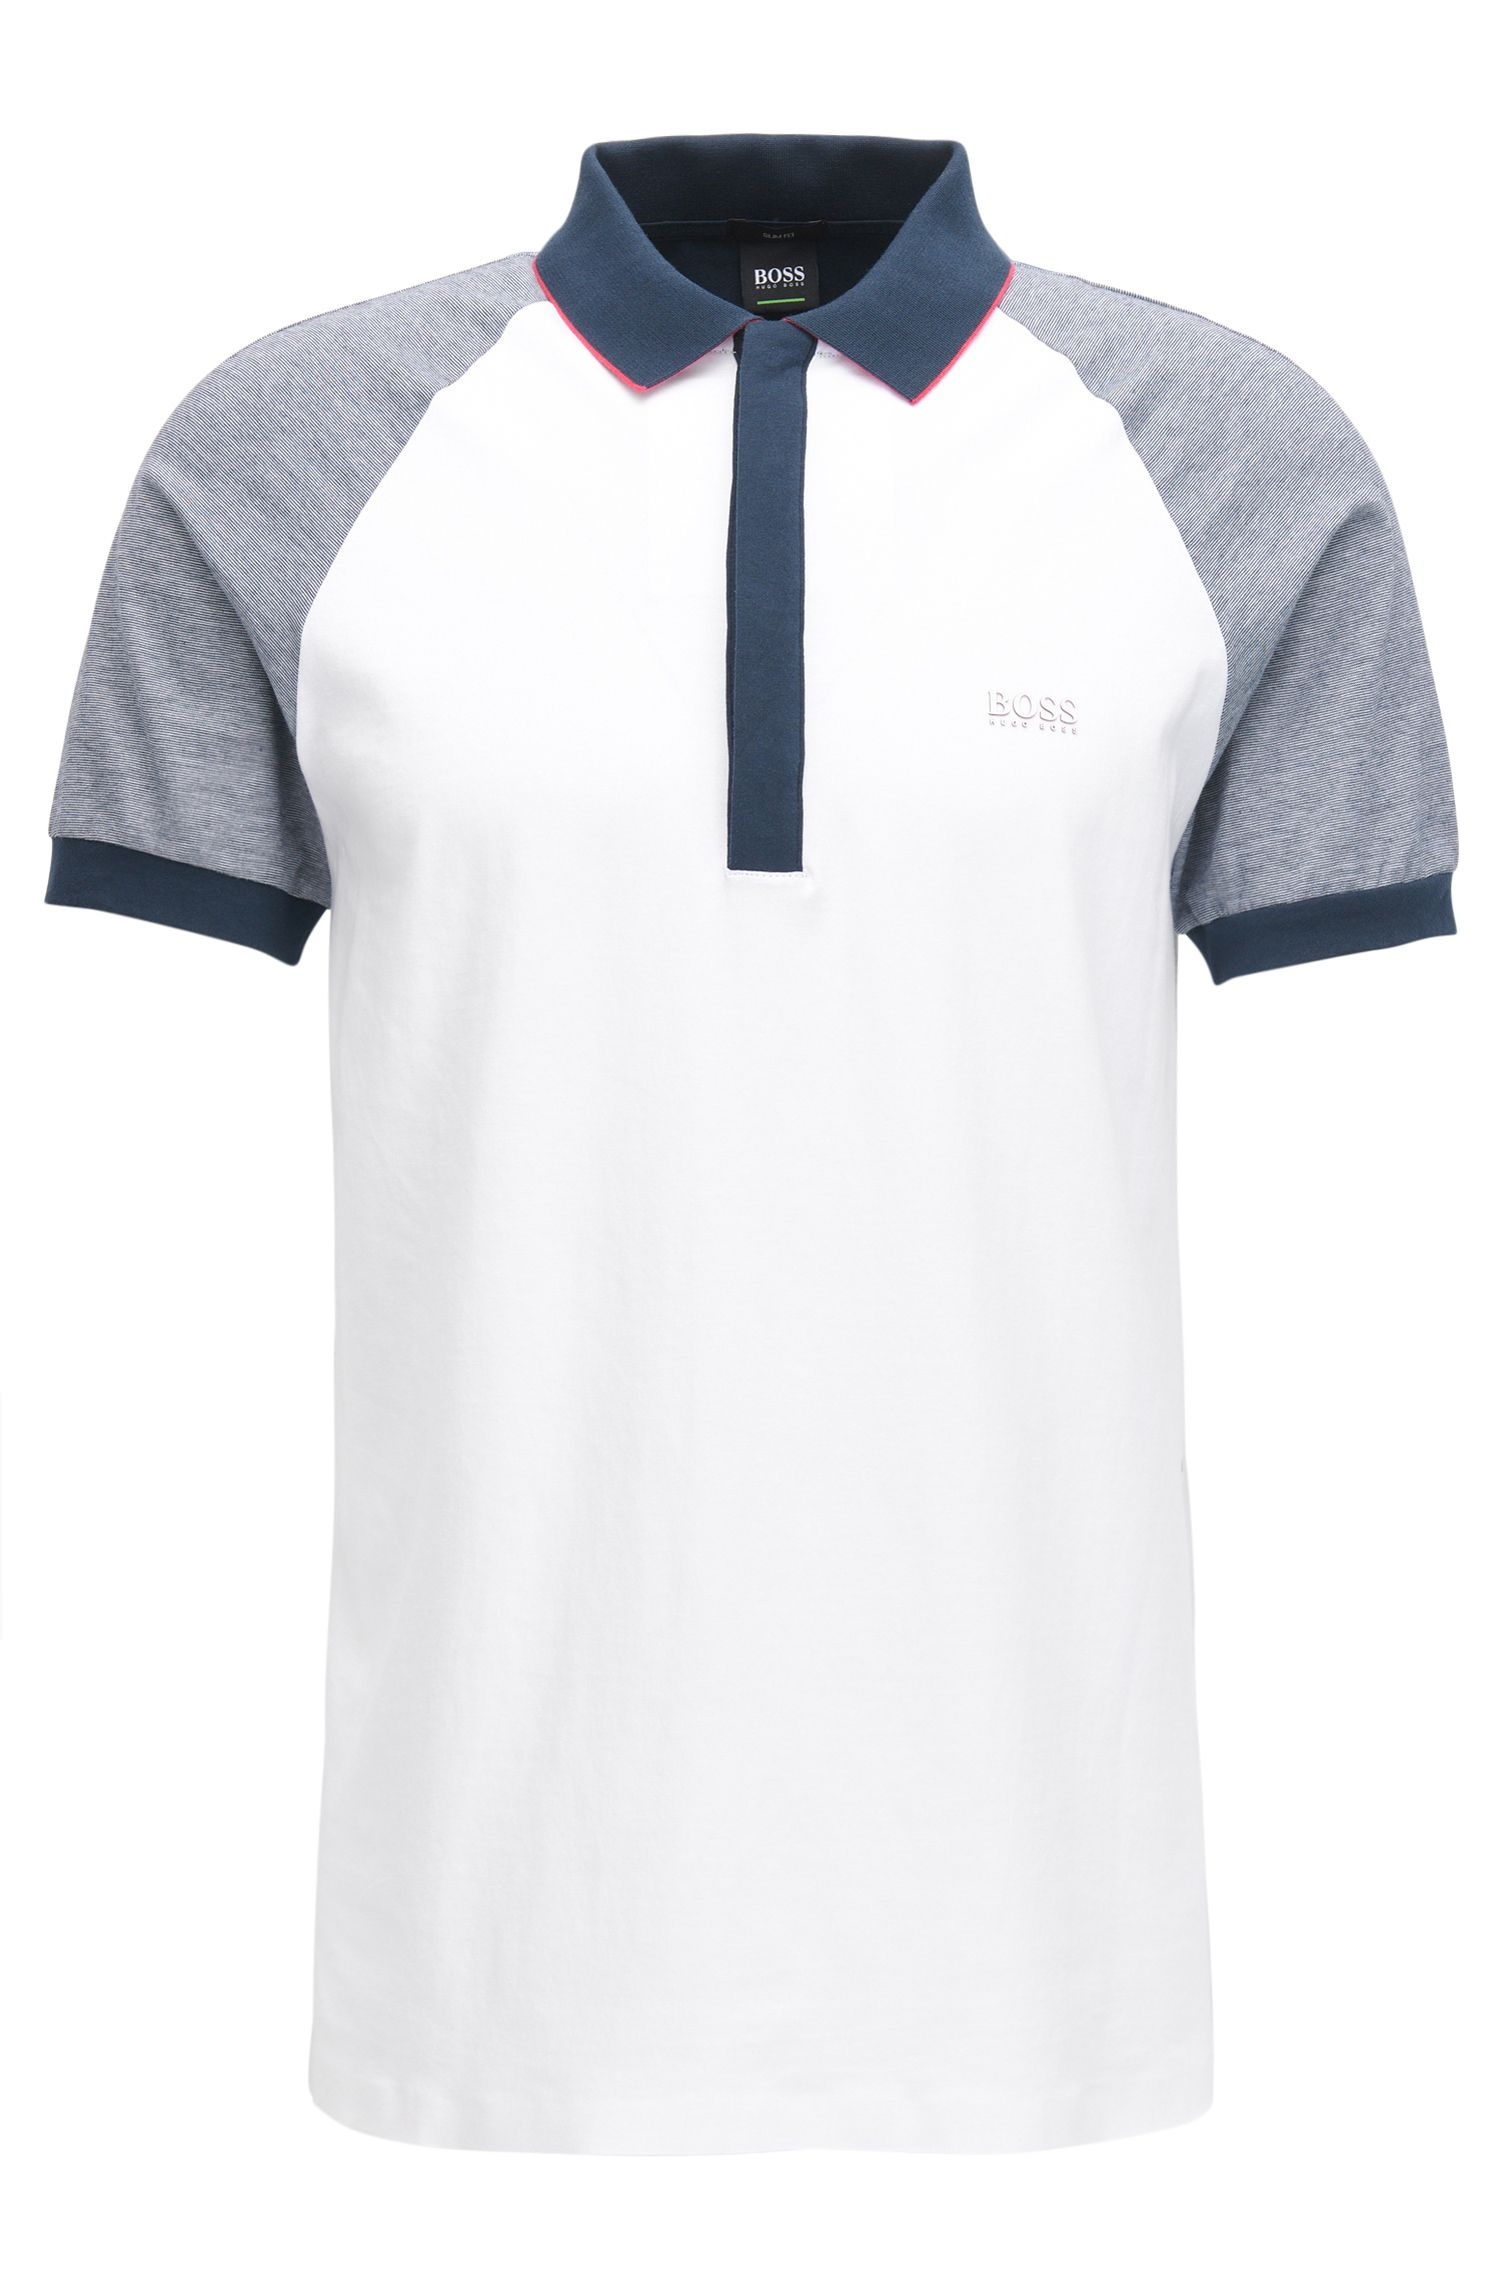 Polo slim fit in jersey senza cuciture